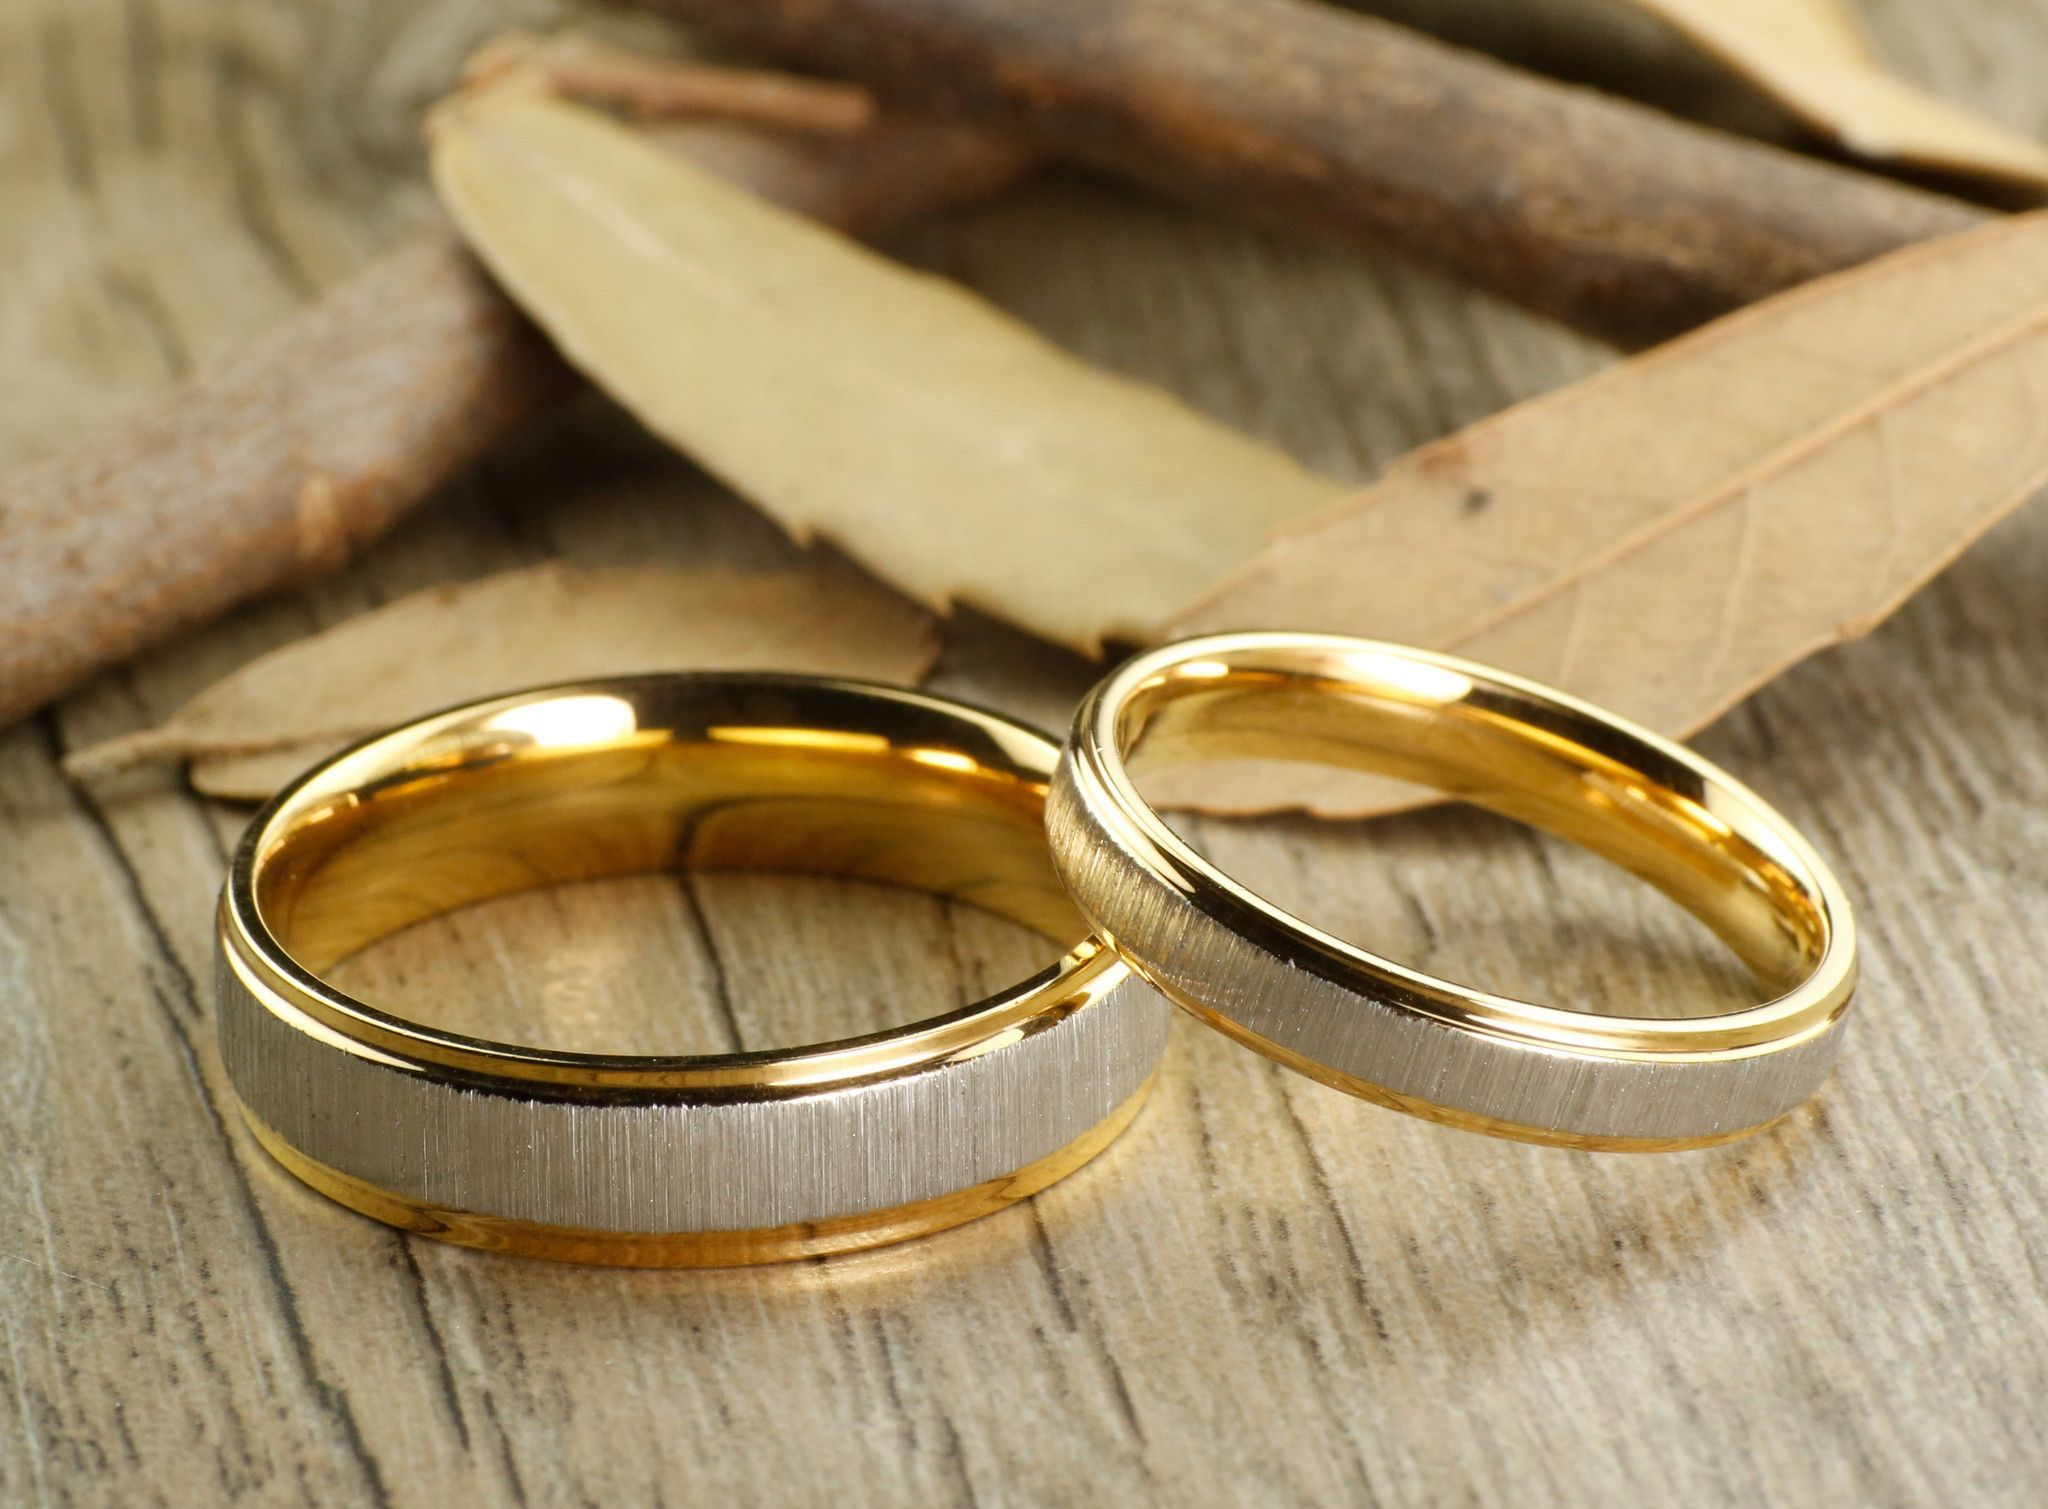 gold and of band wedding her unique luxury yellow his sets bands for rings idea